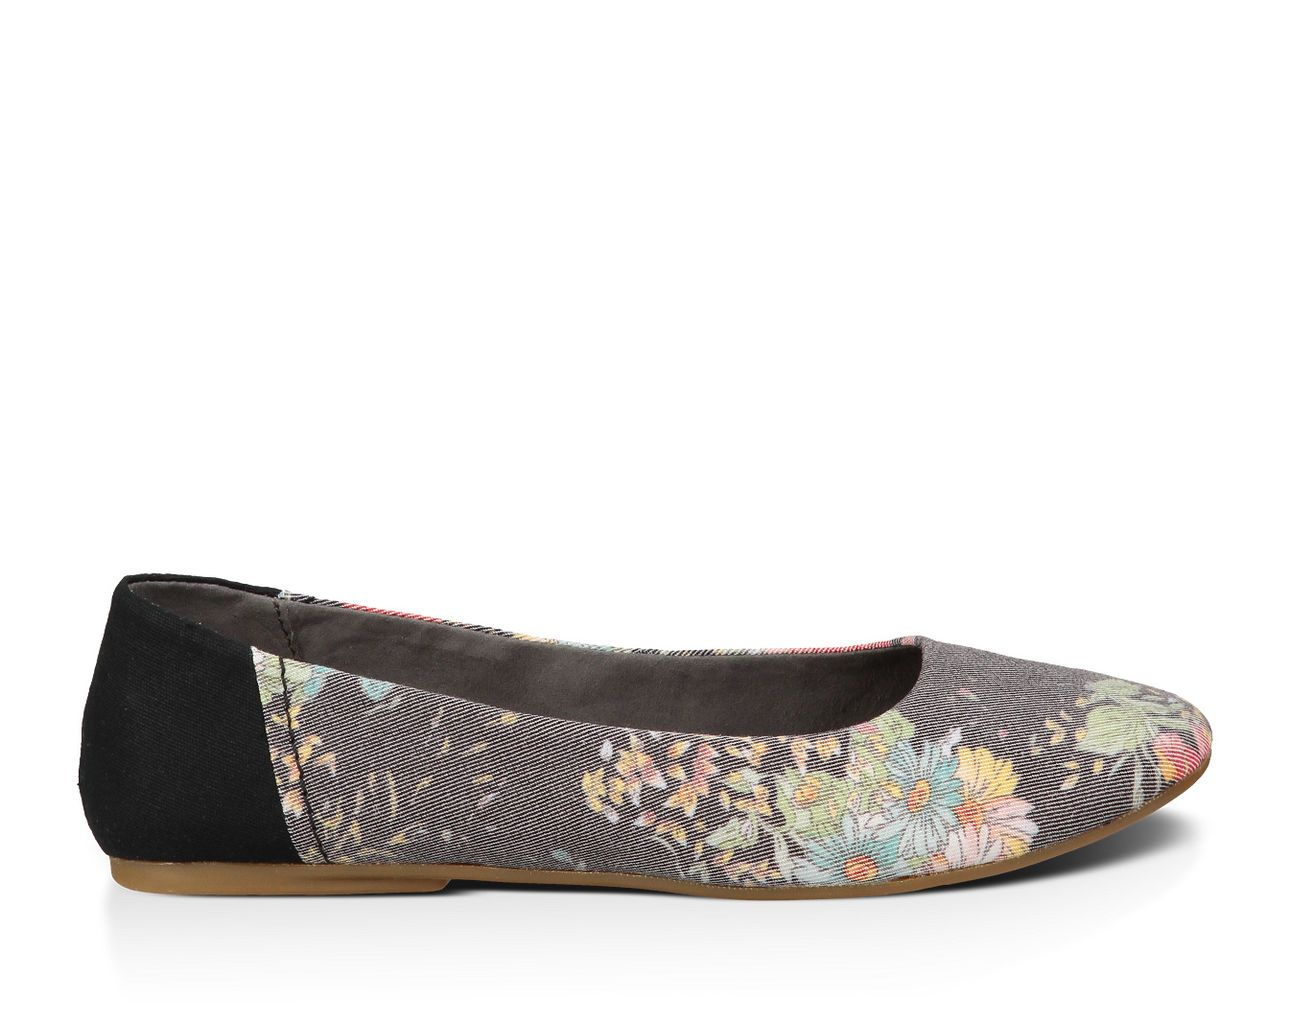 Free Shipping on Orders $35+. Shop Sanuk's collection of Women's Yoga Eden Ballet Flats, Sandals, Boots & More! Keep Your Feet Styling and Your Toes Smiling! #NeverUncomfortable